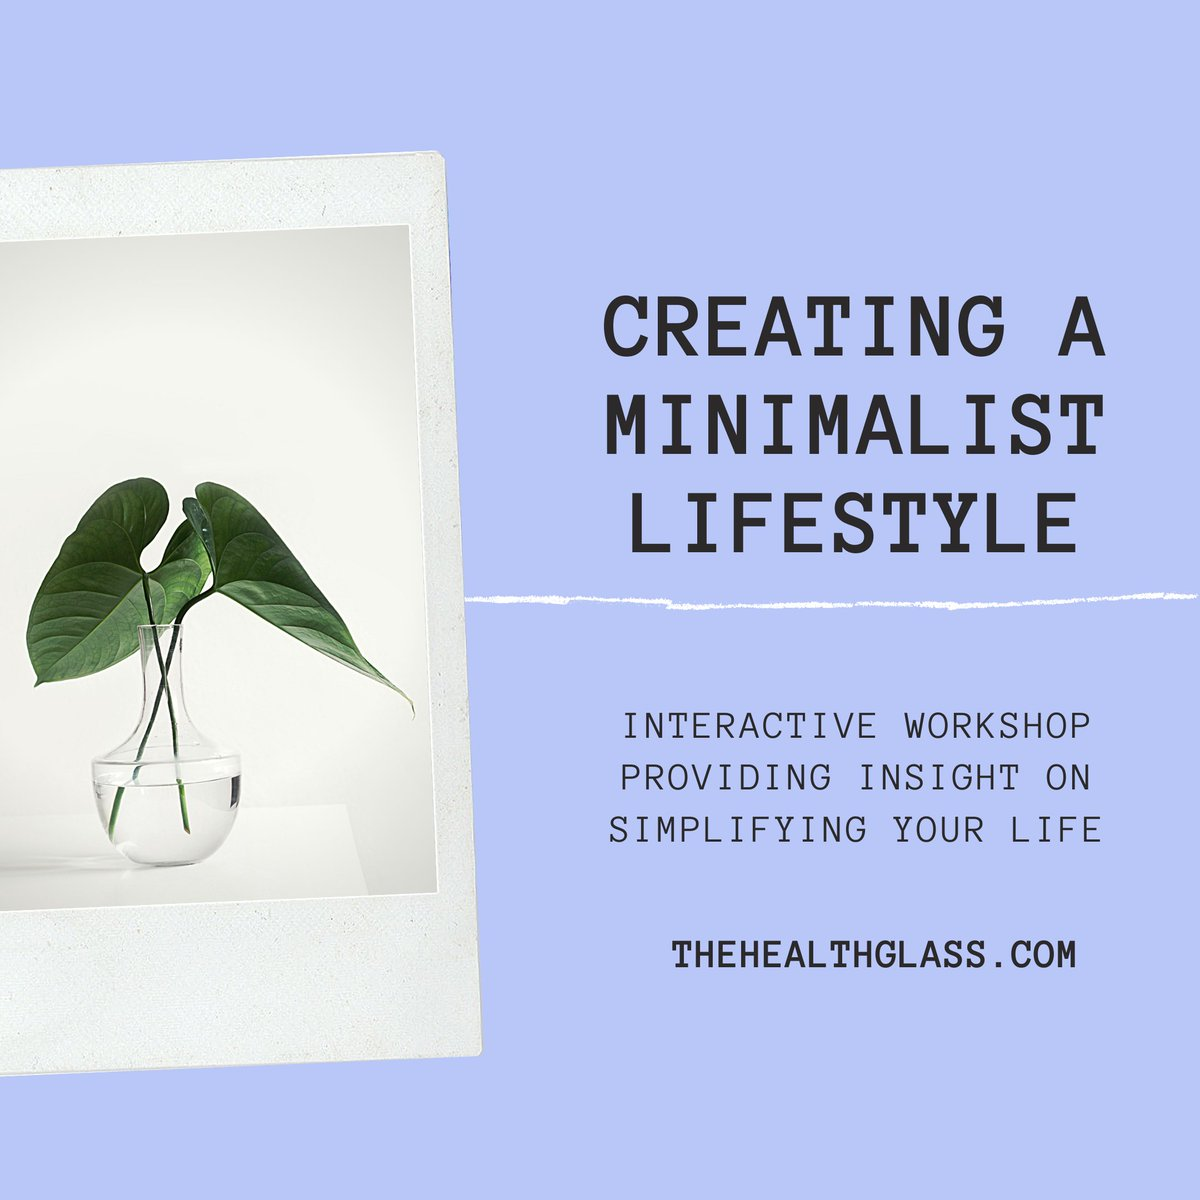 The Creating A Minimalist Lifestyle workshop is an insightful session where employees will learn the variables which contribute to simplifying their lifestyle and learn the benefits of minimalist living. pic.twitter.com/nNZmfzBJSF